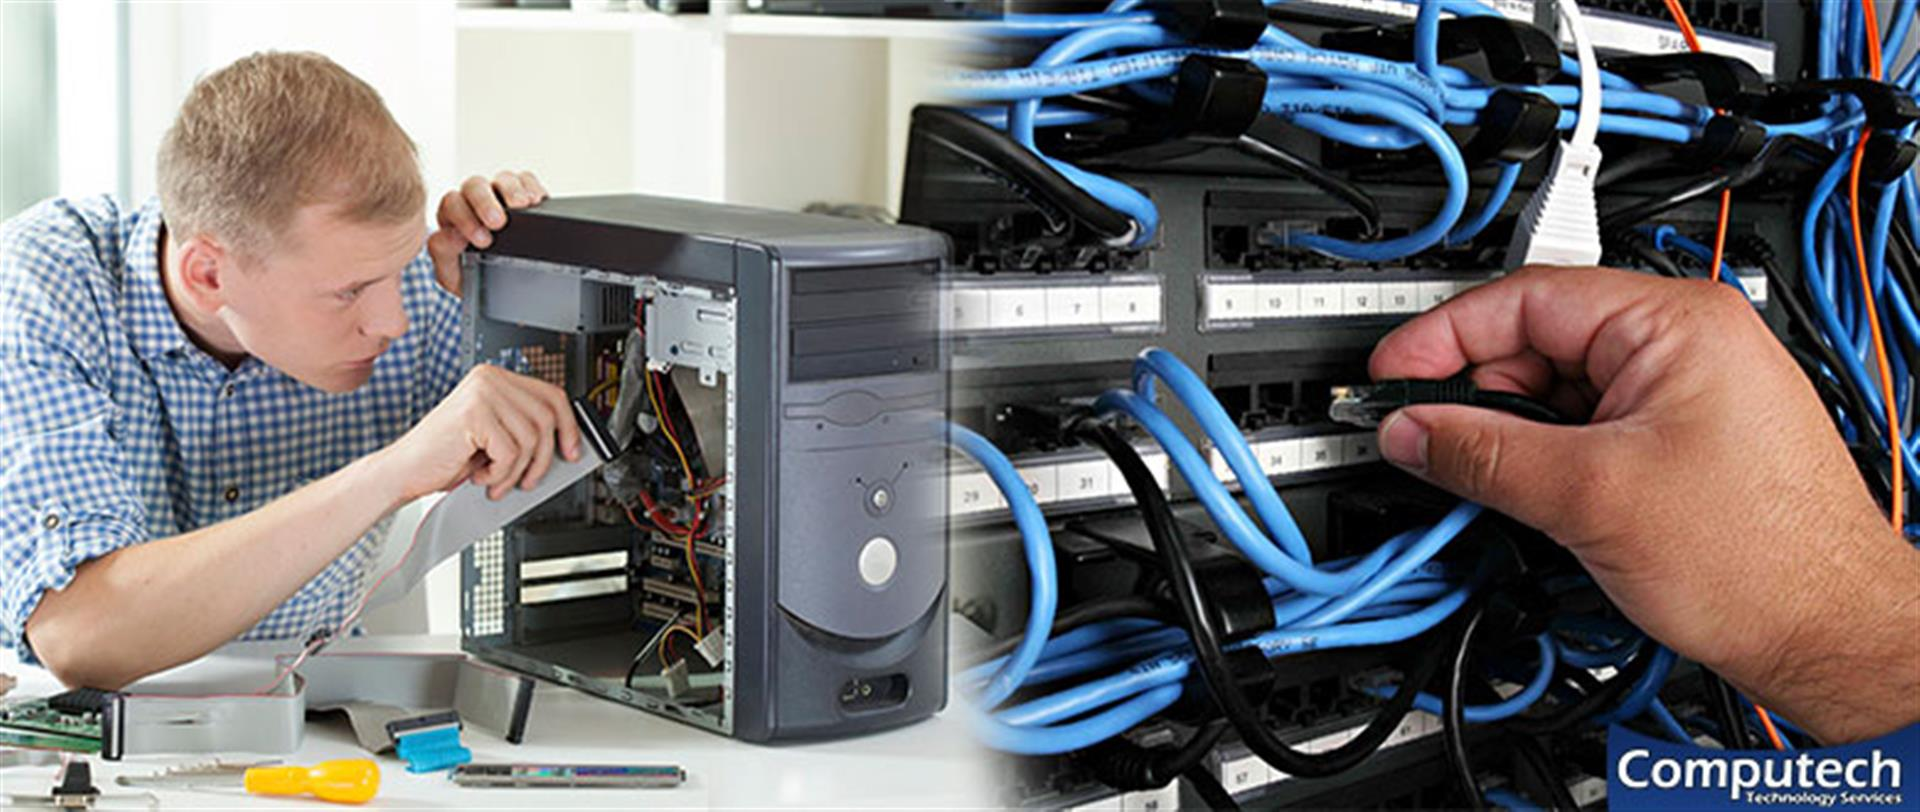 Prescott Valley Arizona Onsite PC & Printer Repair, Network, Voice and High Speed Data Low Voltage Cabling Services